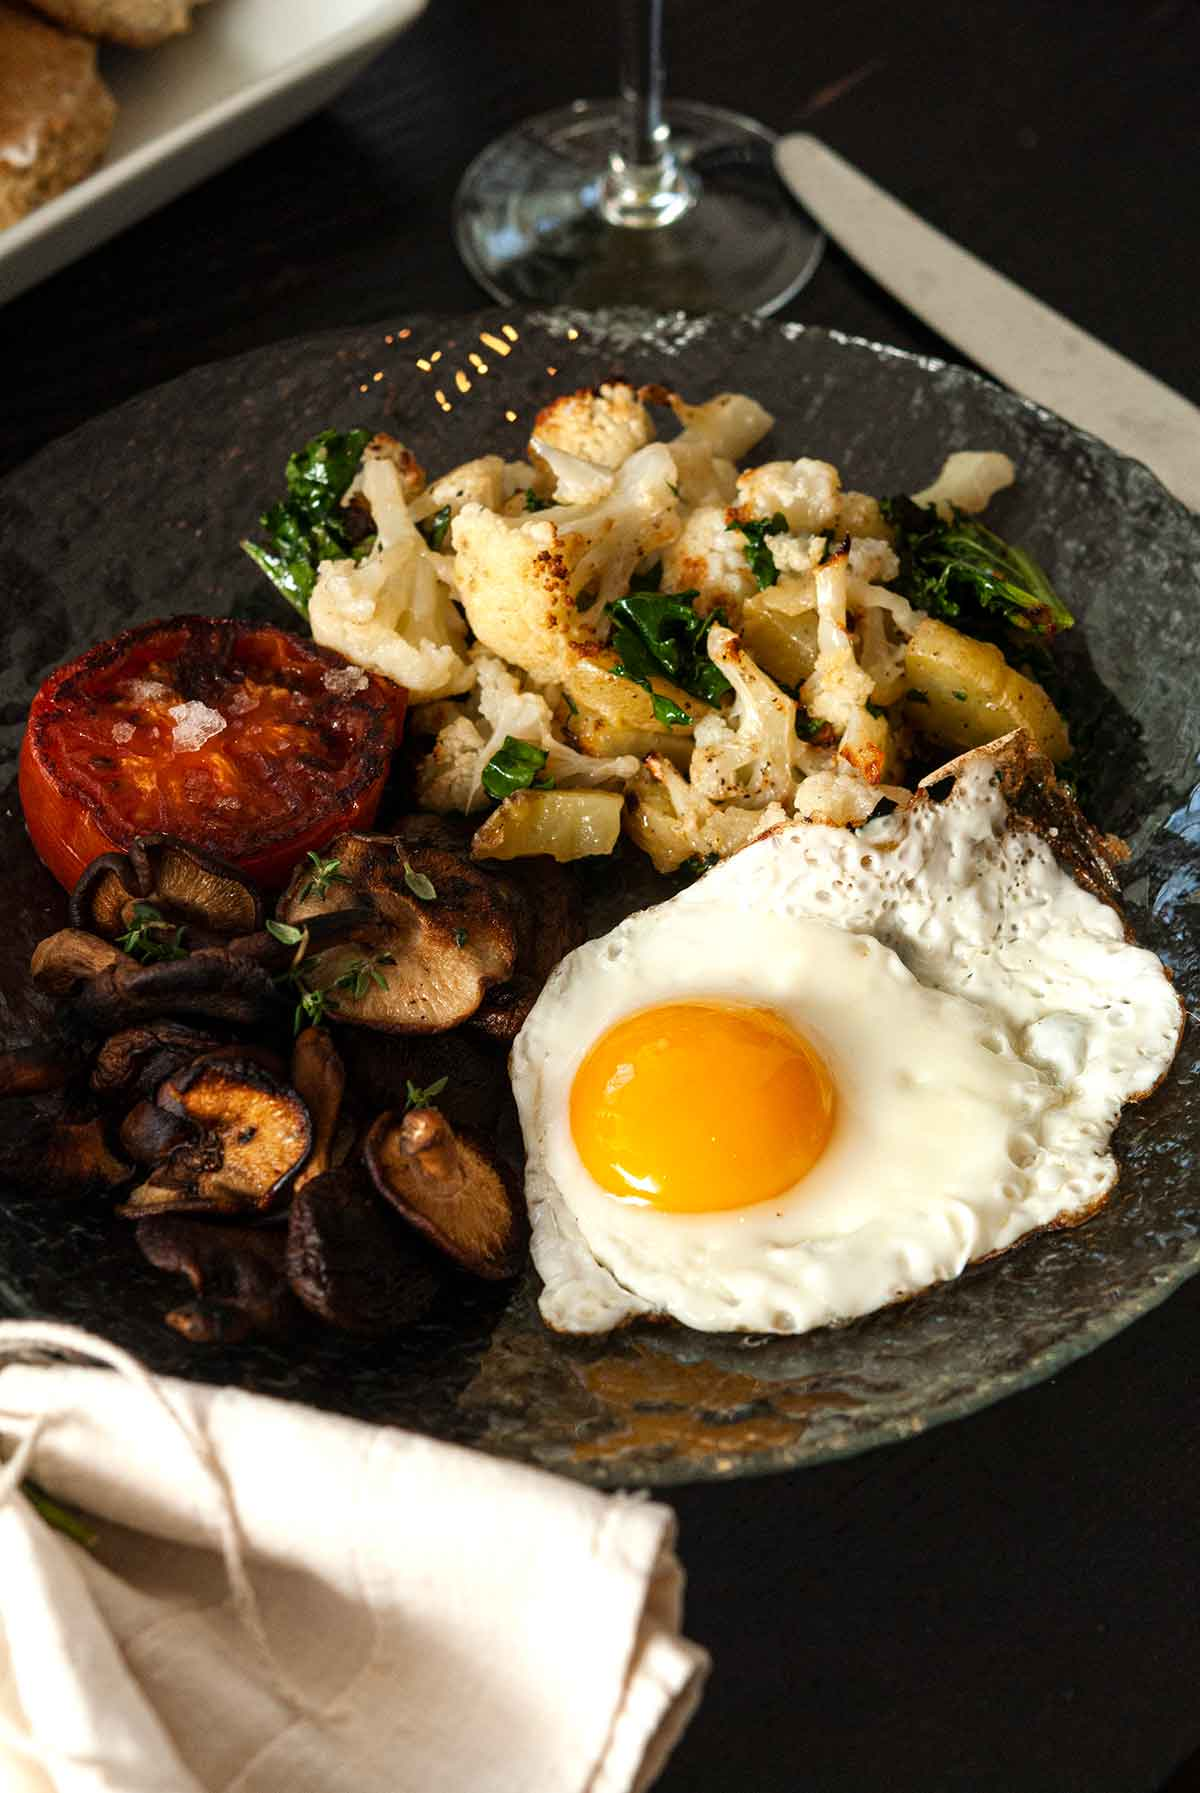 A plate of potato-cauliflower hash, a tomato, mushrooms and 1 egg on a table.